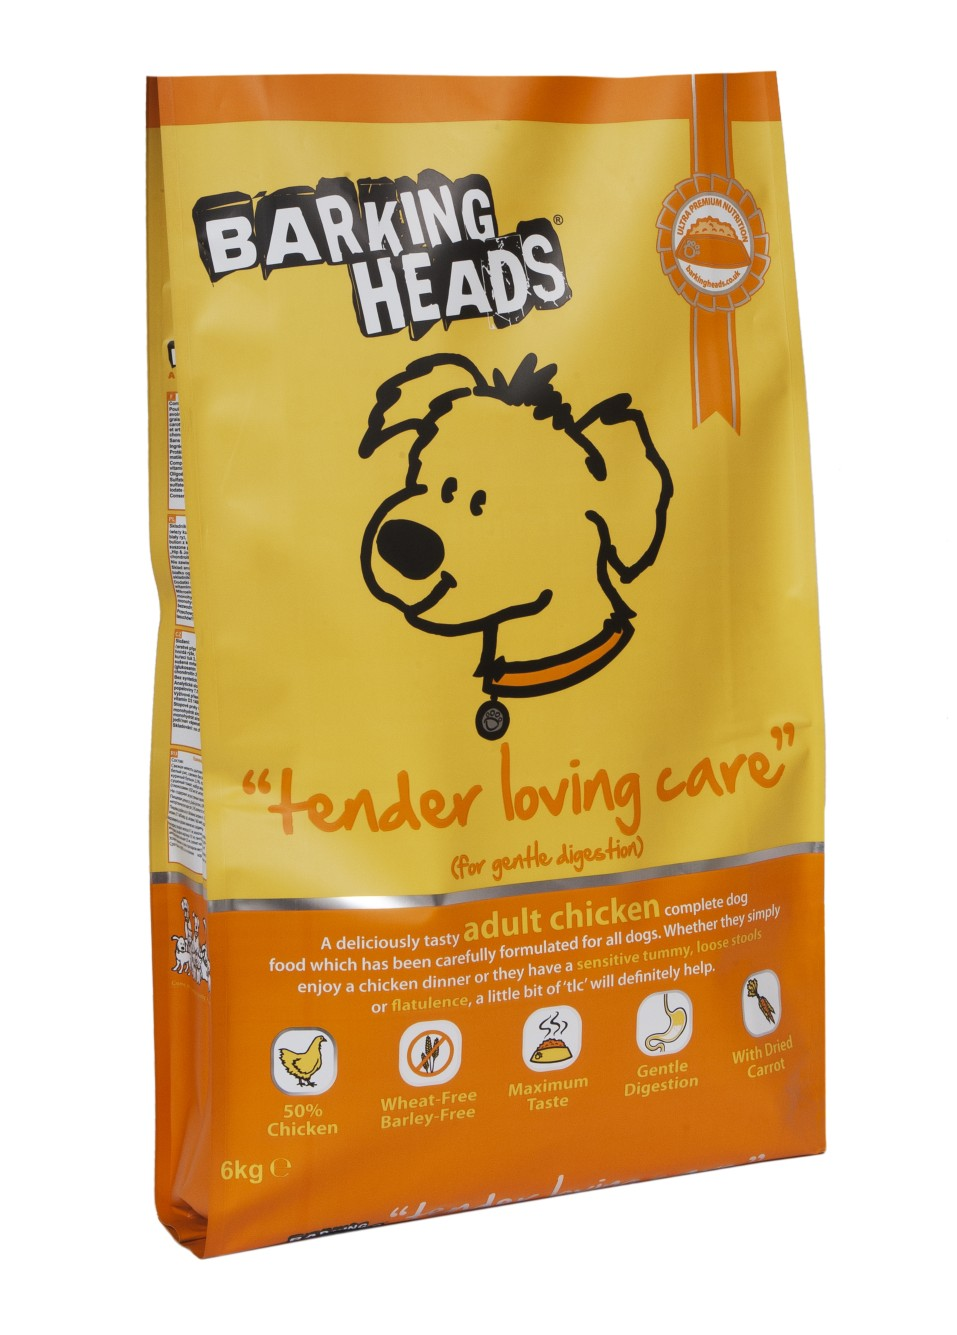 BARKING HEADS Tender Loving Care 6kg